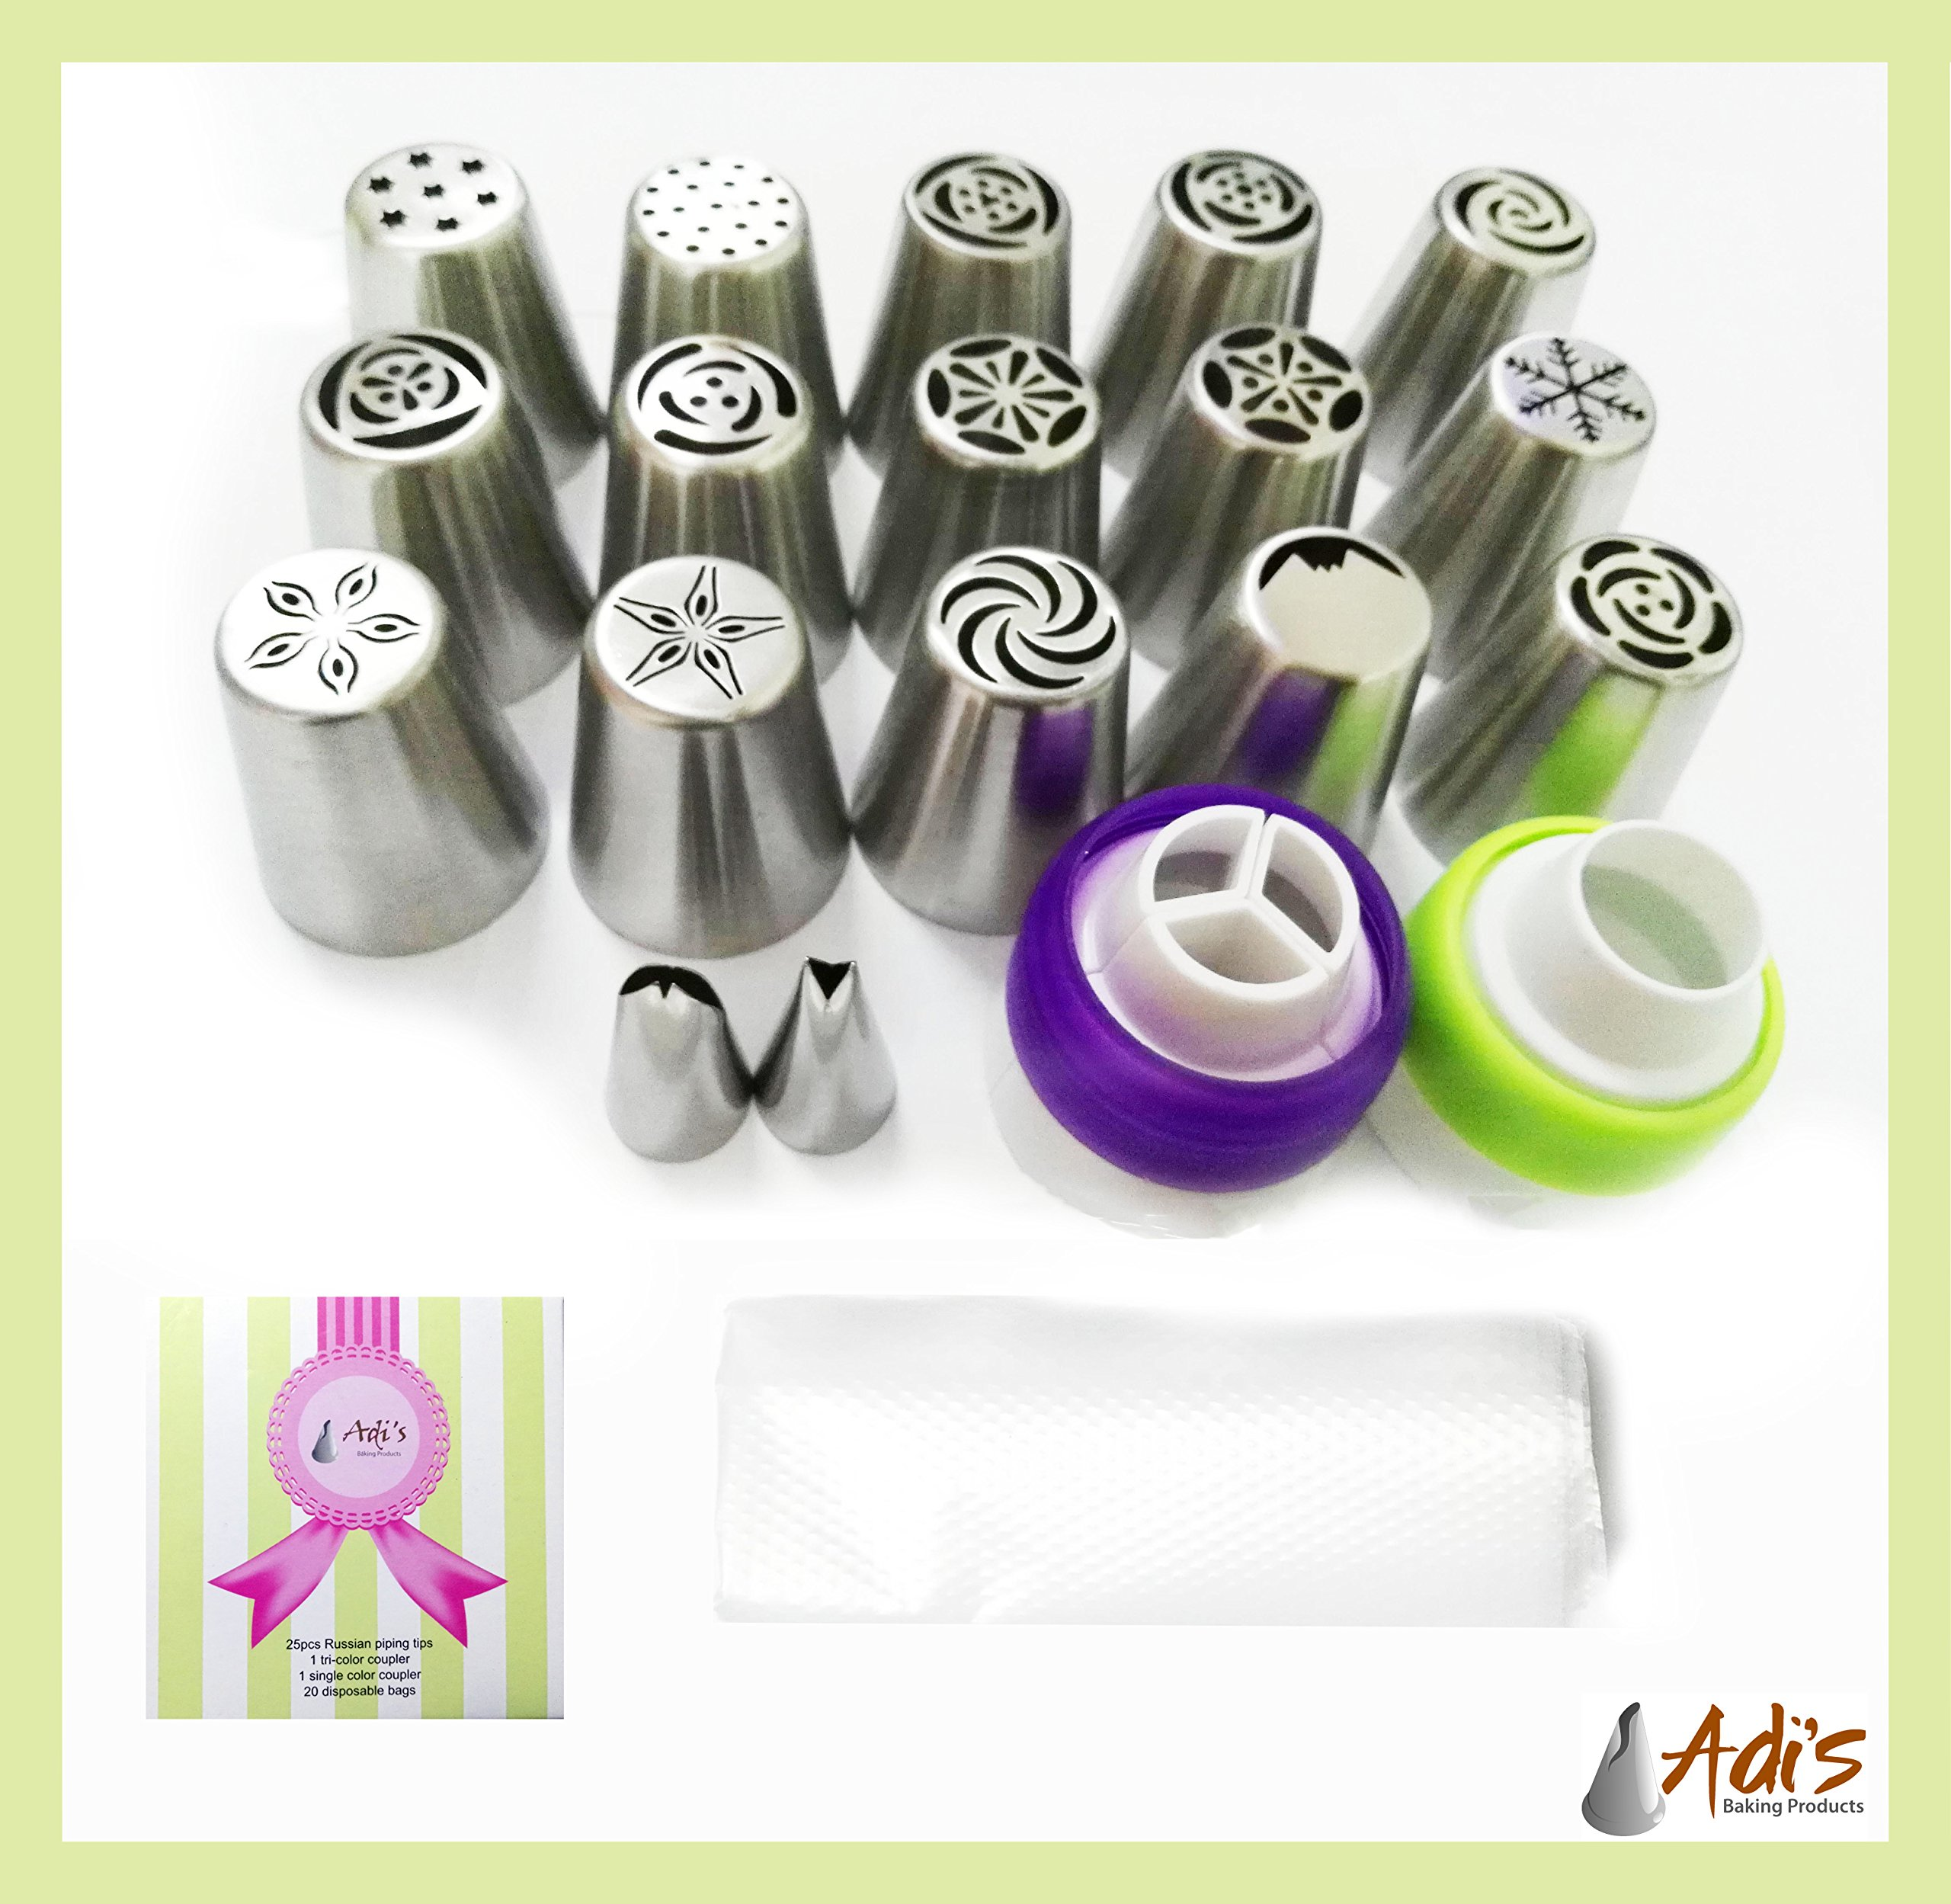 Russian Piping Tips 15 PCS, For the Creative Mom. Icing Nozzles Decorating Tools for Family Occasion. 1 Tricolor Coupler + A Single-Color Coupler & 20 Disposable Bags.